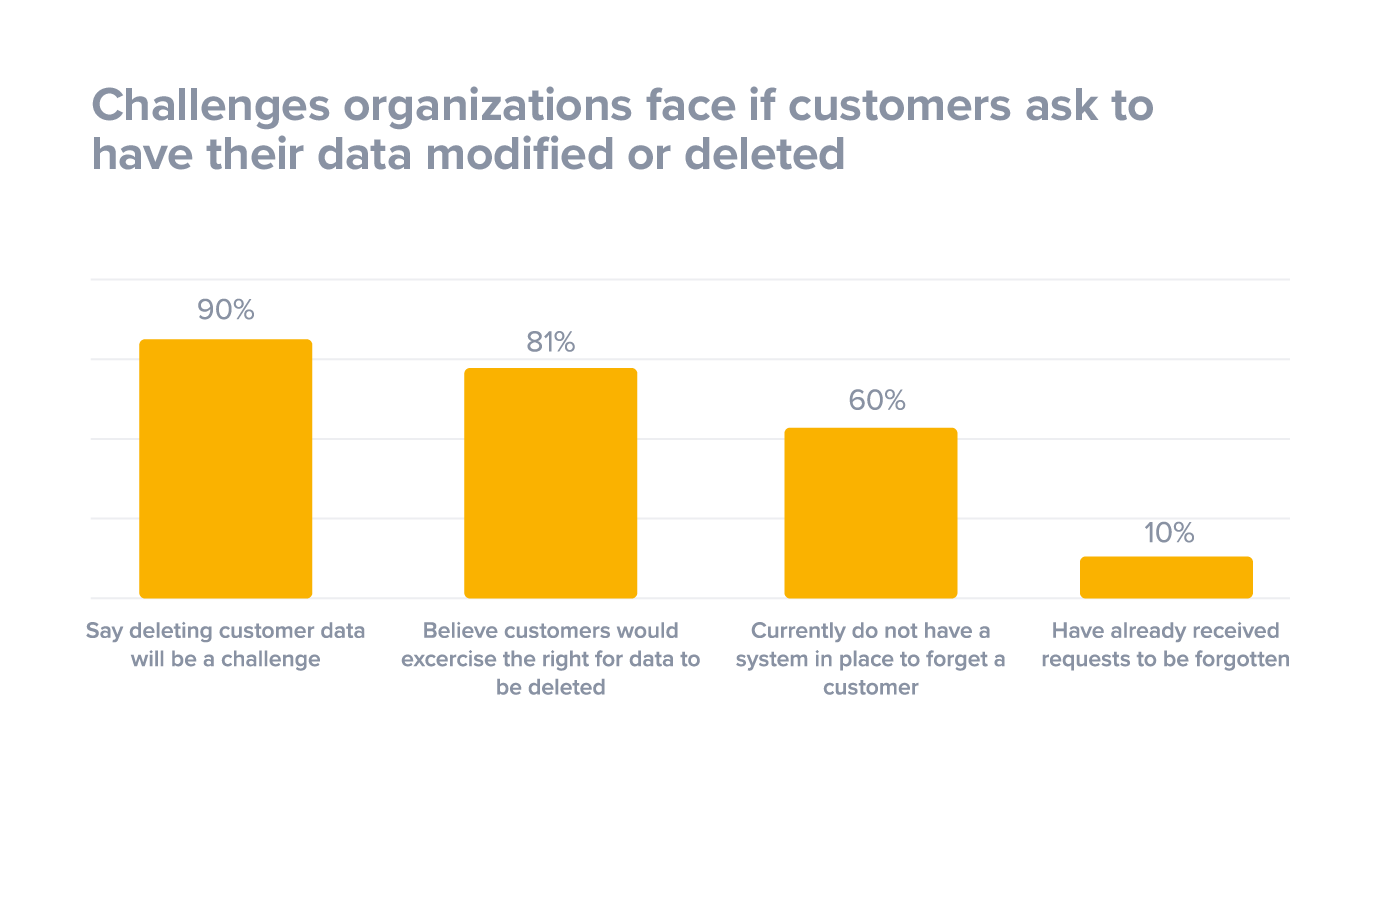 Challenges organizations face if customers ask to have their data modified or deleted